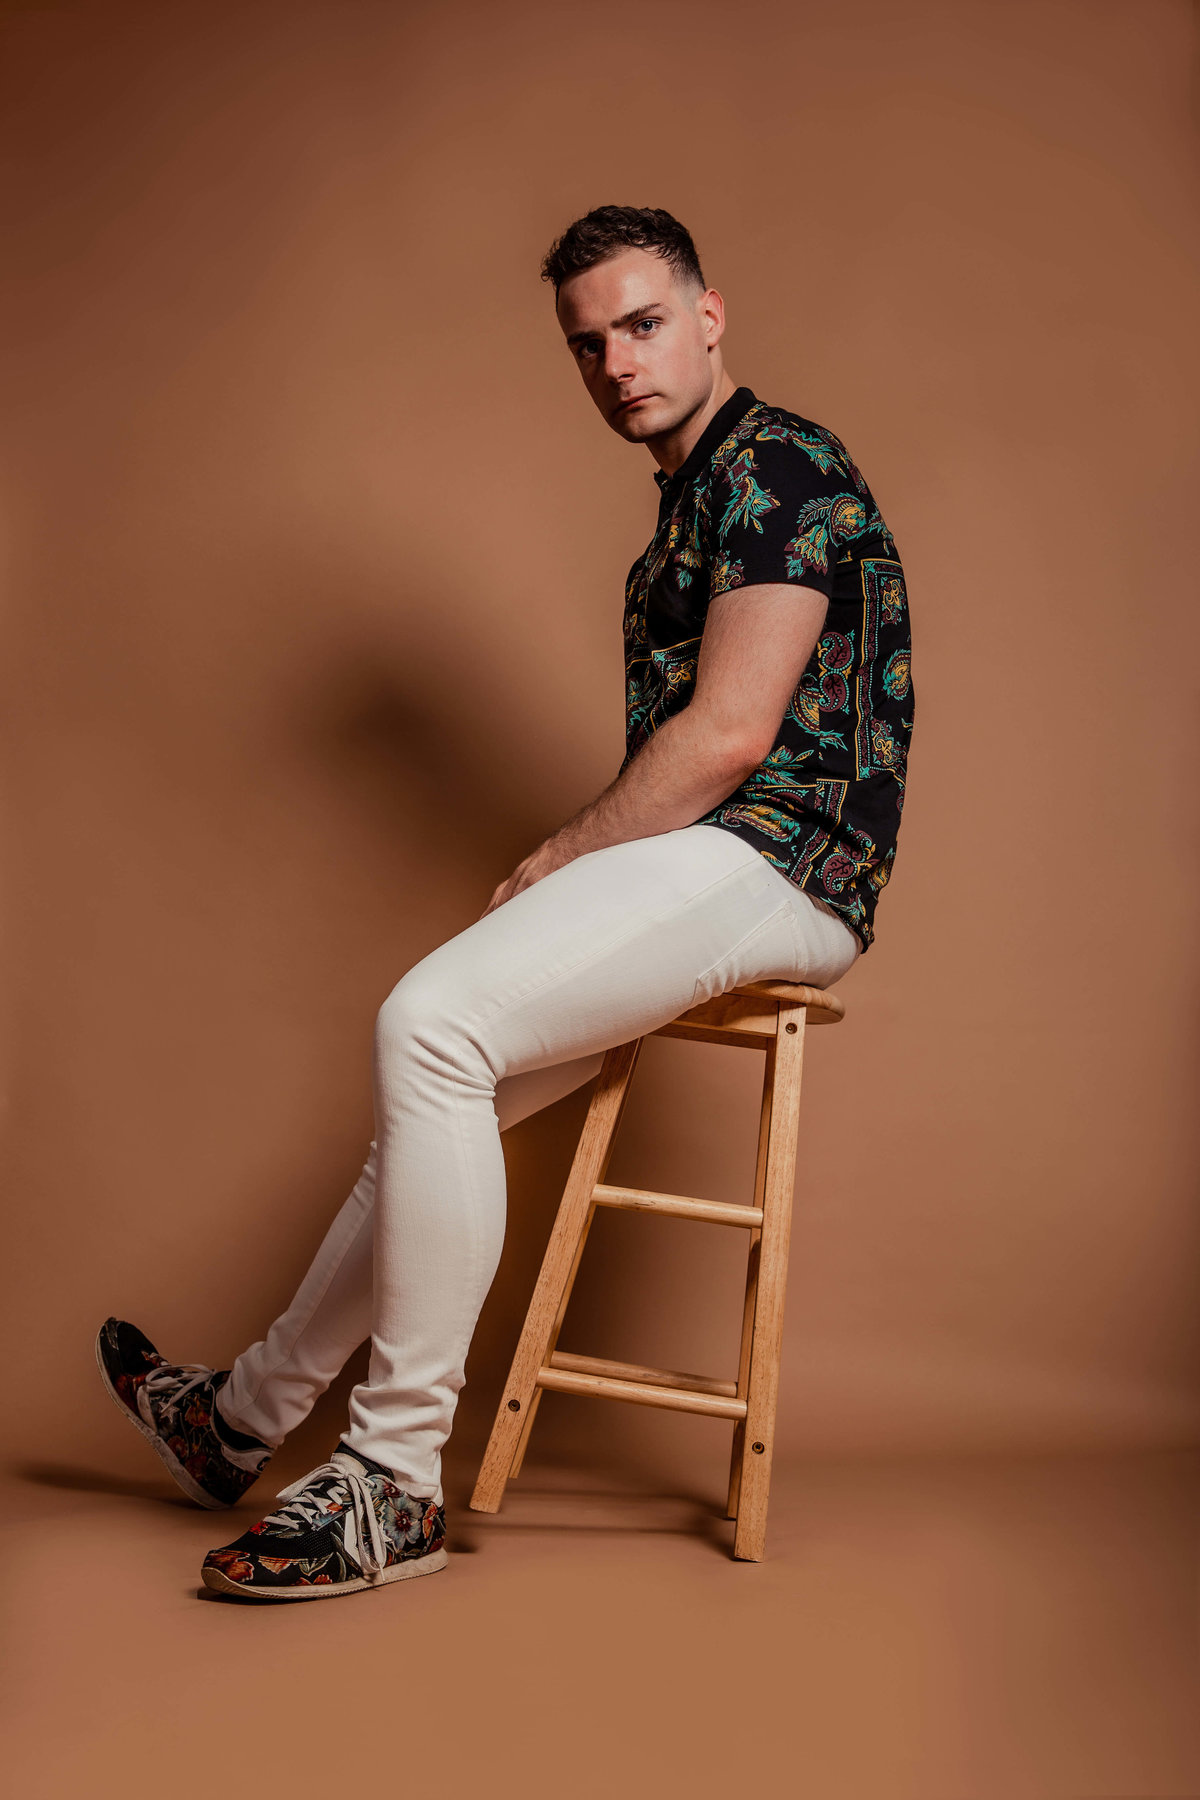 Connor sat leaning back on a stool against a tan background.